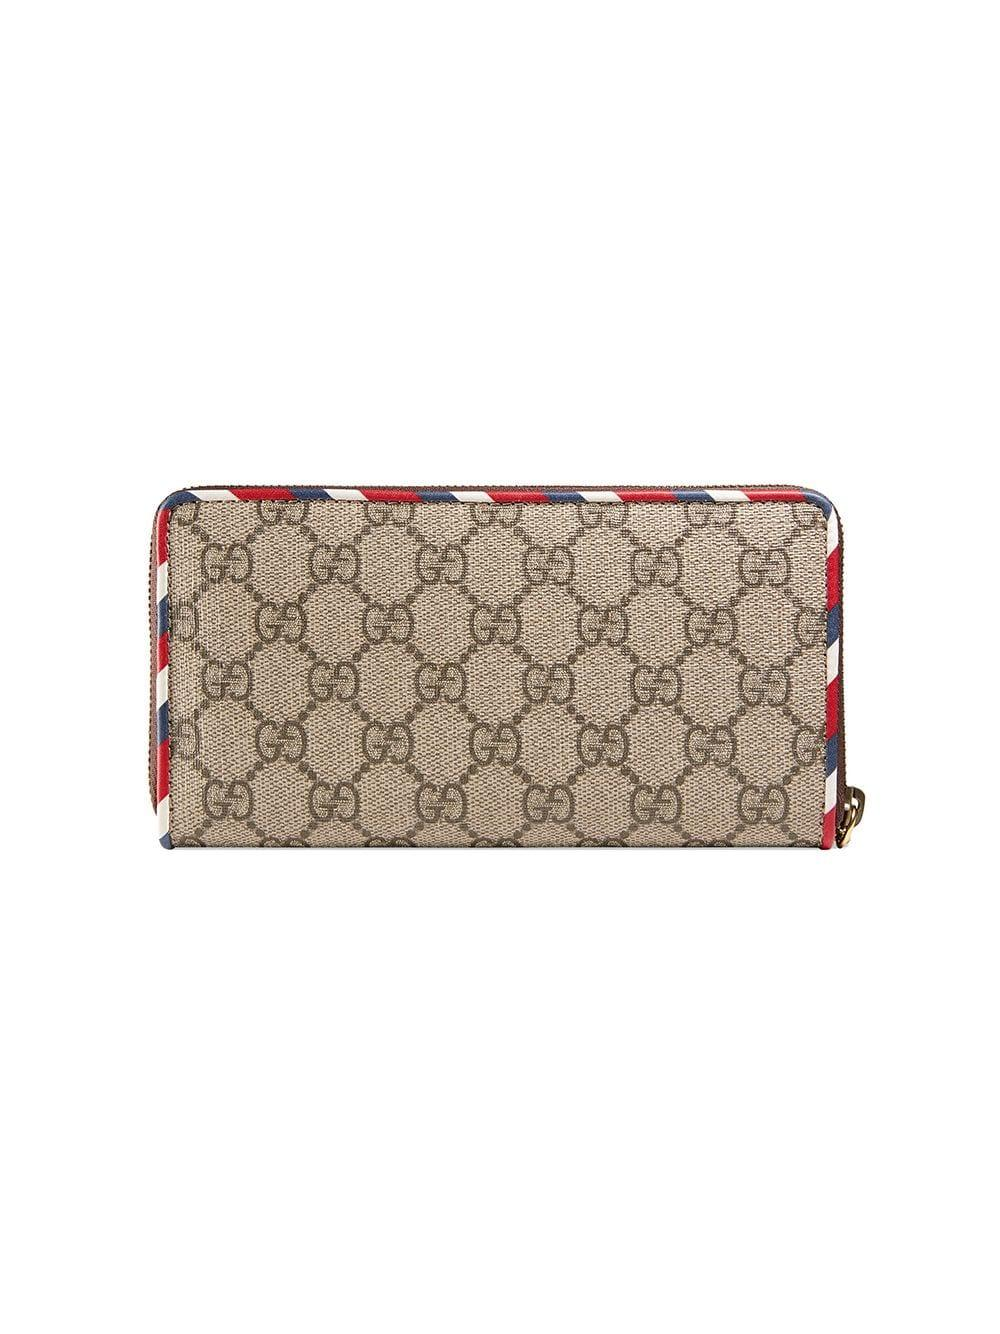 2c00a33e Lyst - Gucci Courrier GG Supreme Zip Around Wallet in Brown for Men